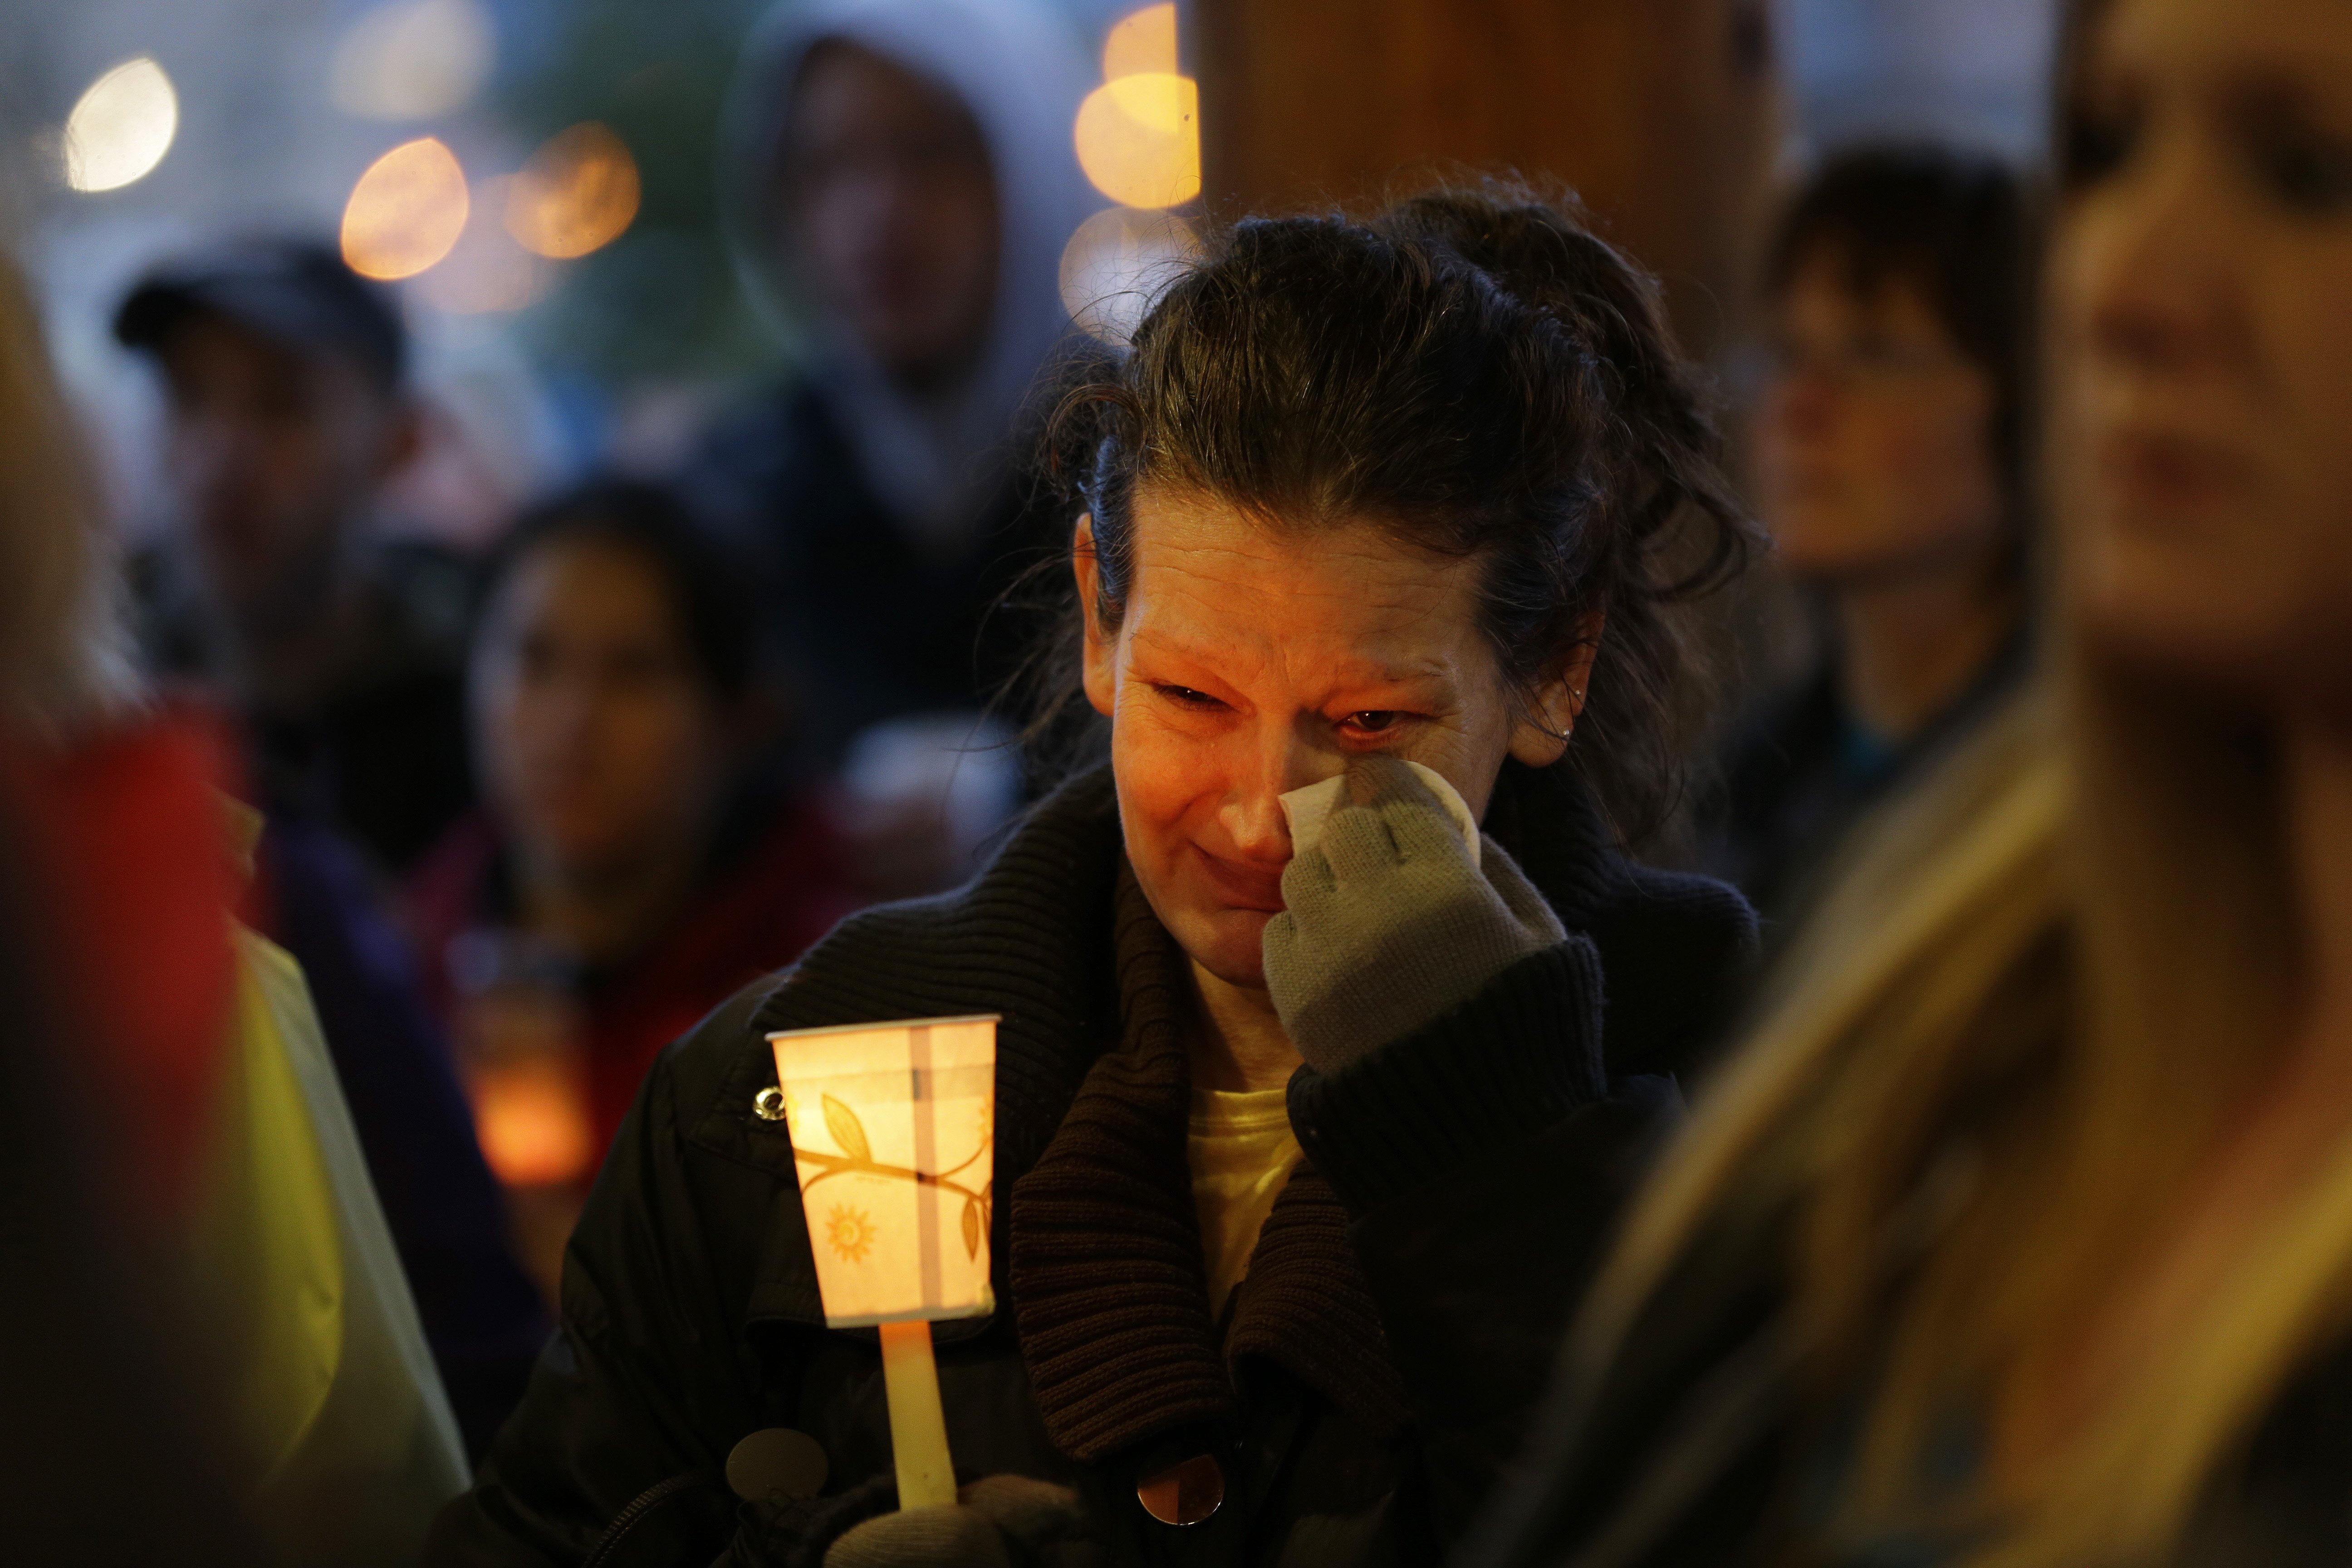 Teresa Welter cries as she holds a candle at a candlelight vigil for the victims of the deadly mudslide in Arlington, Wash., March 25, 2014.